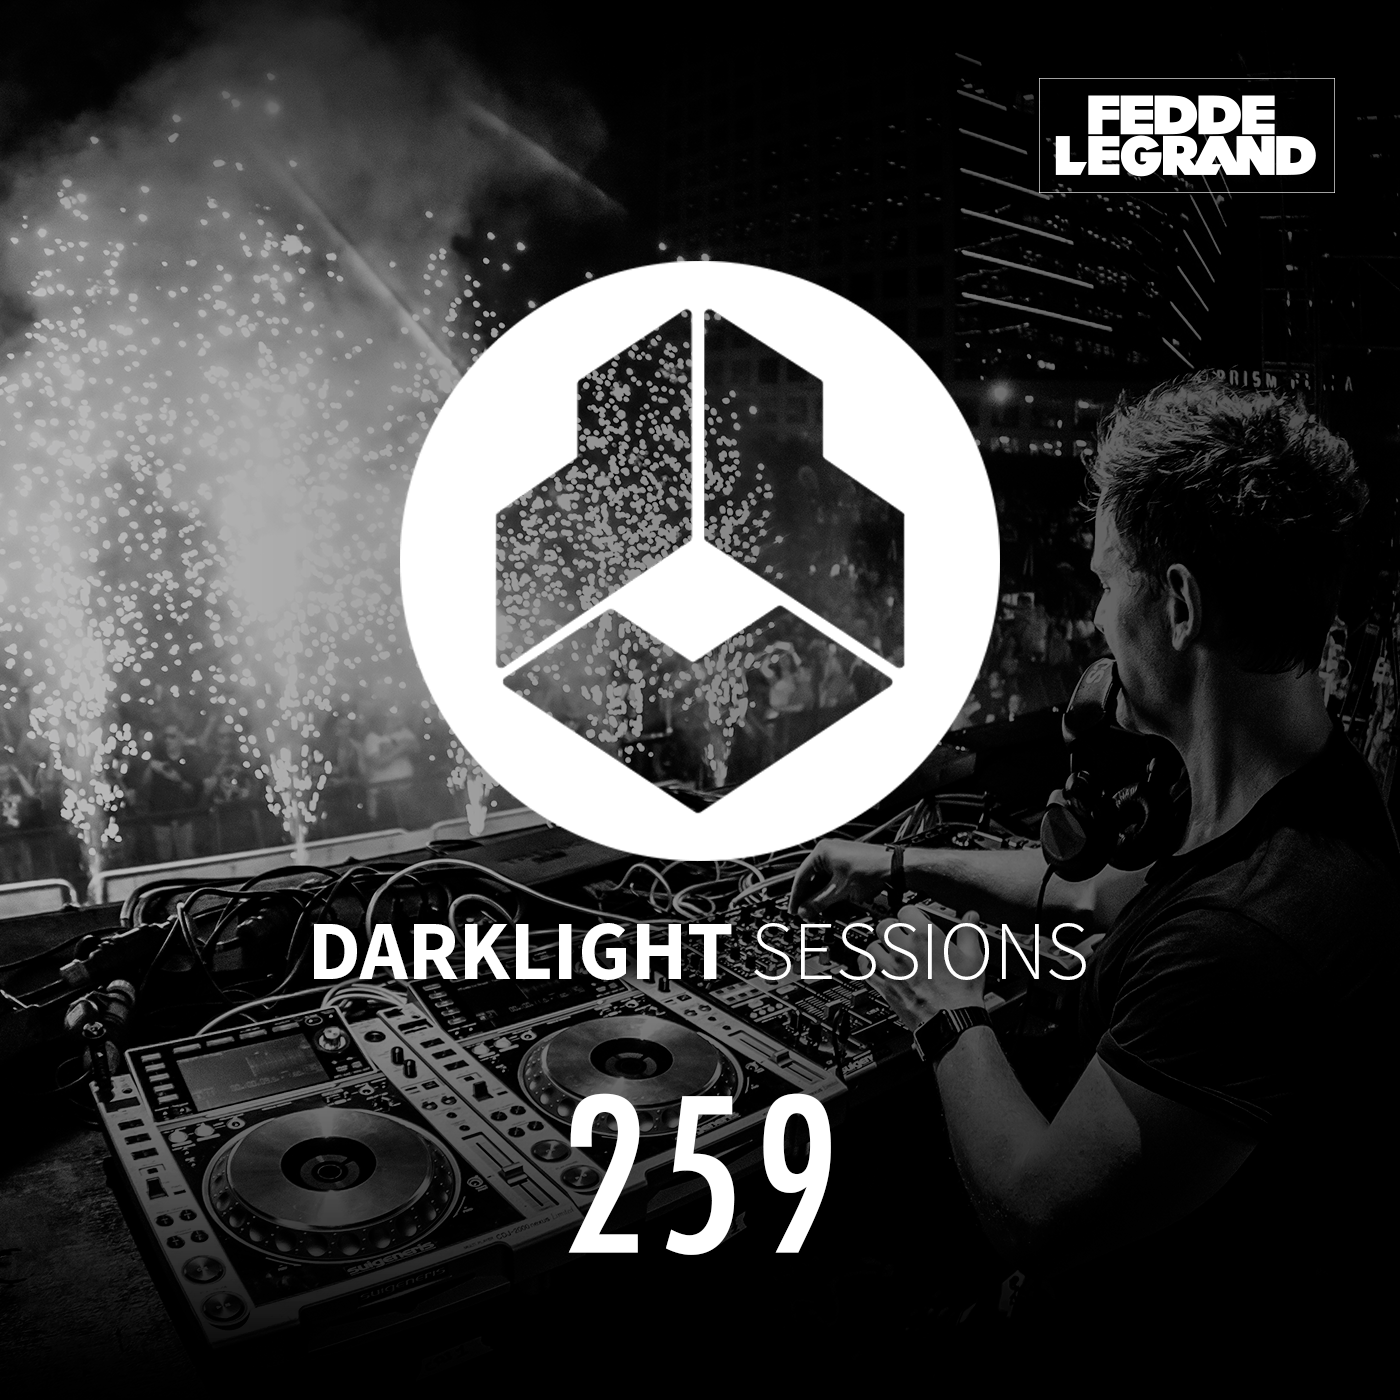 Darklight Sessions 259 (Summer Special)